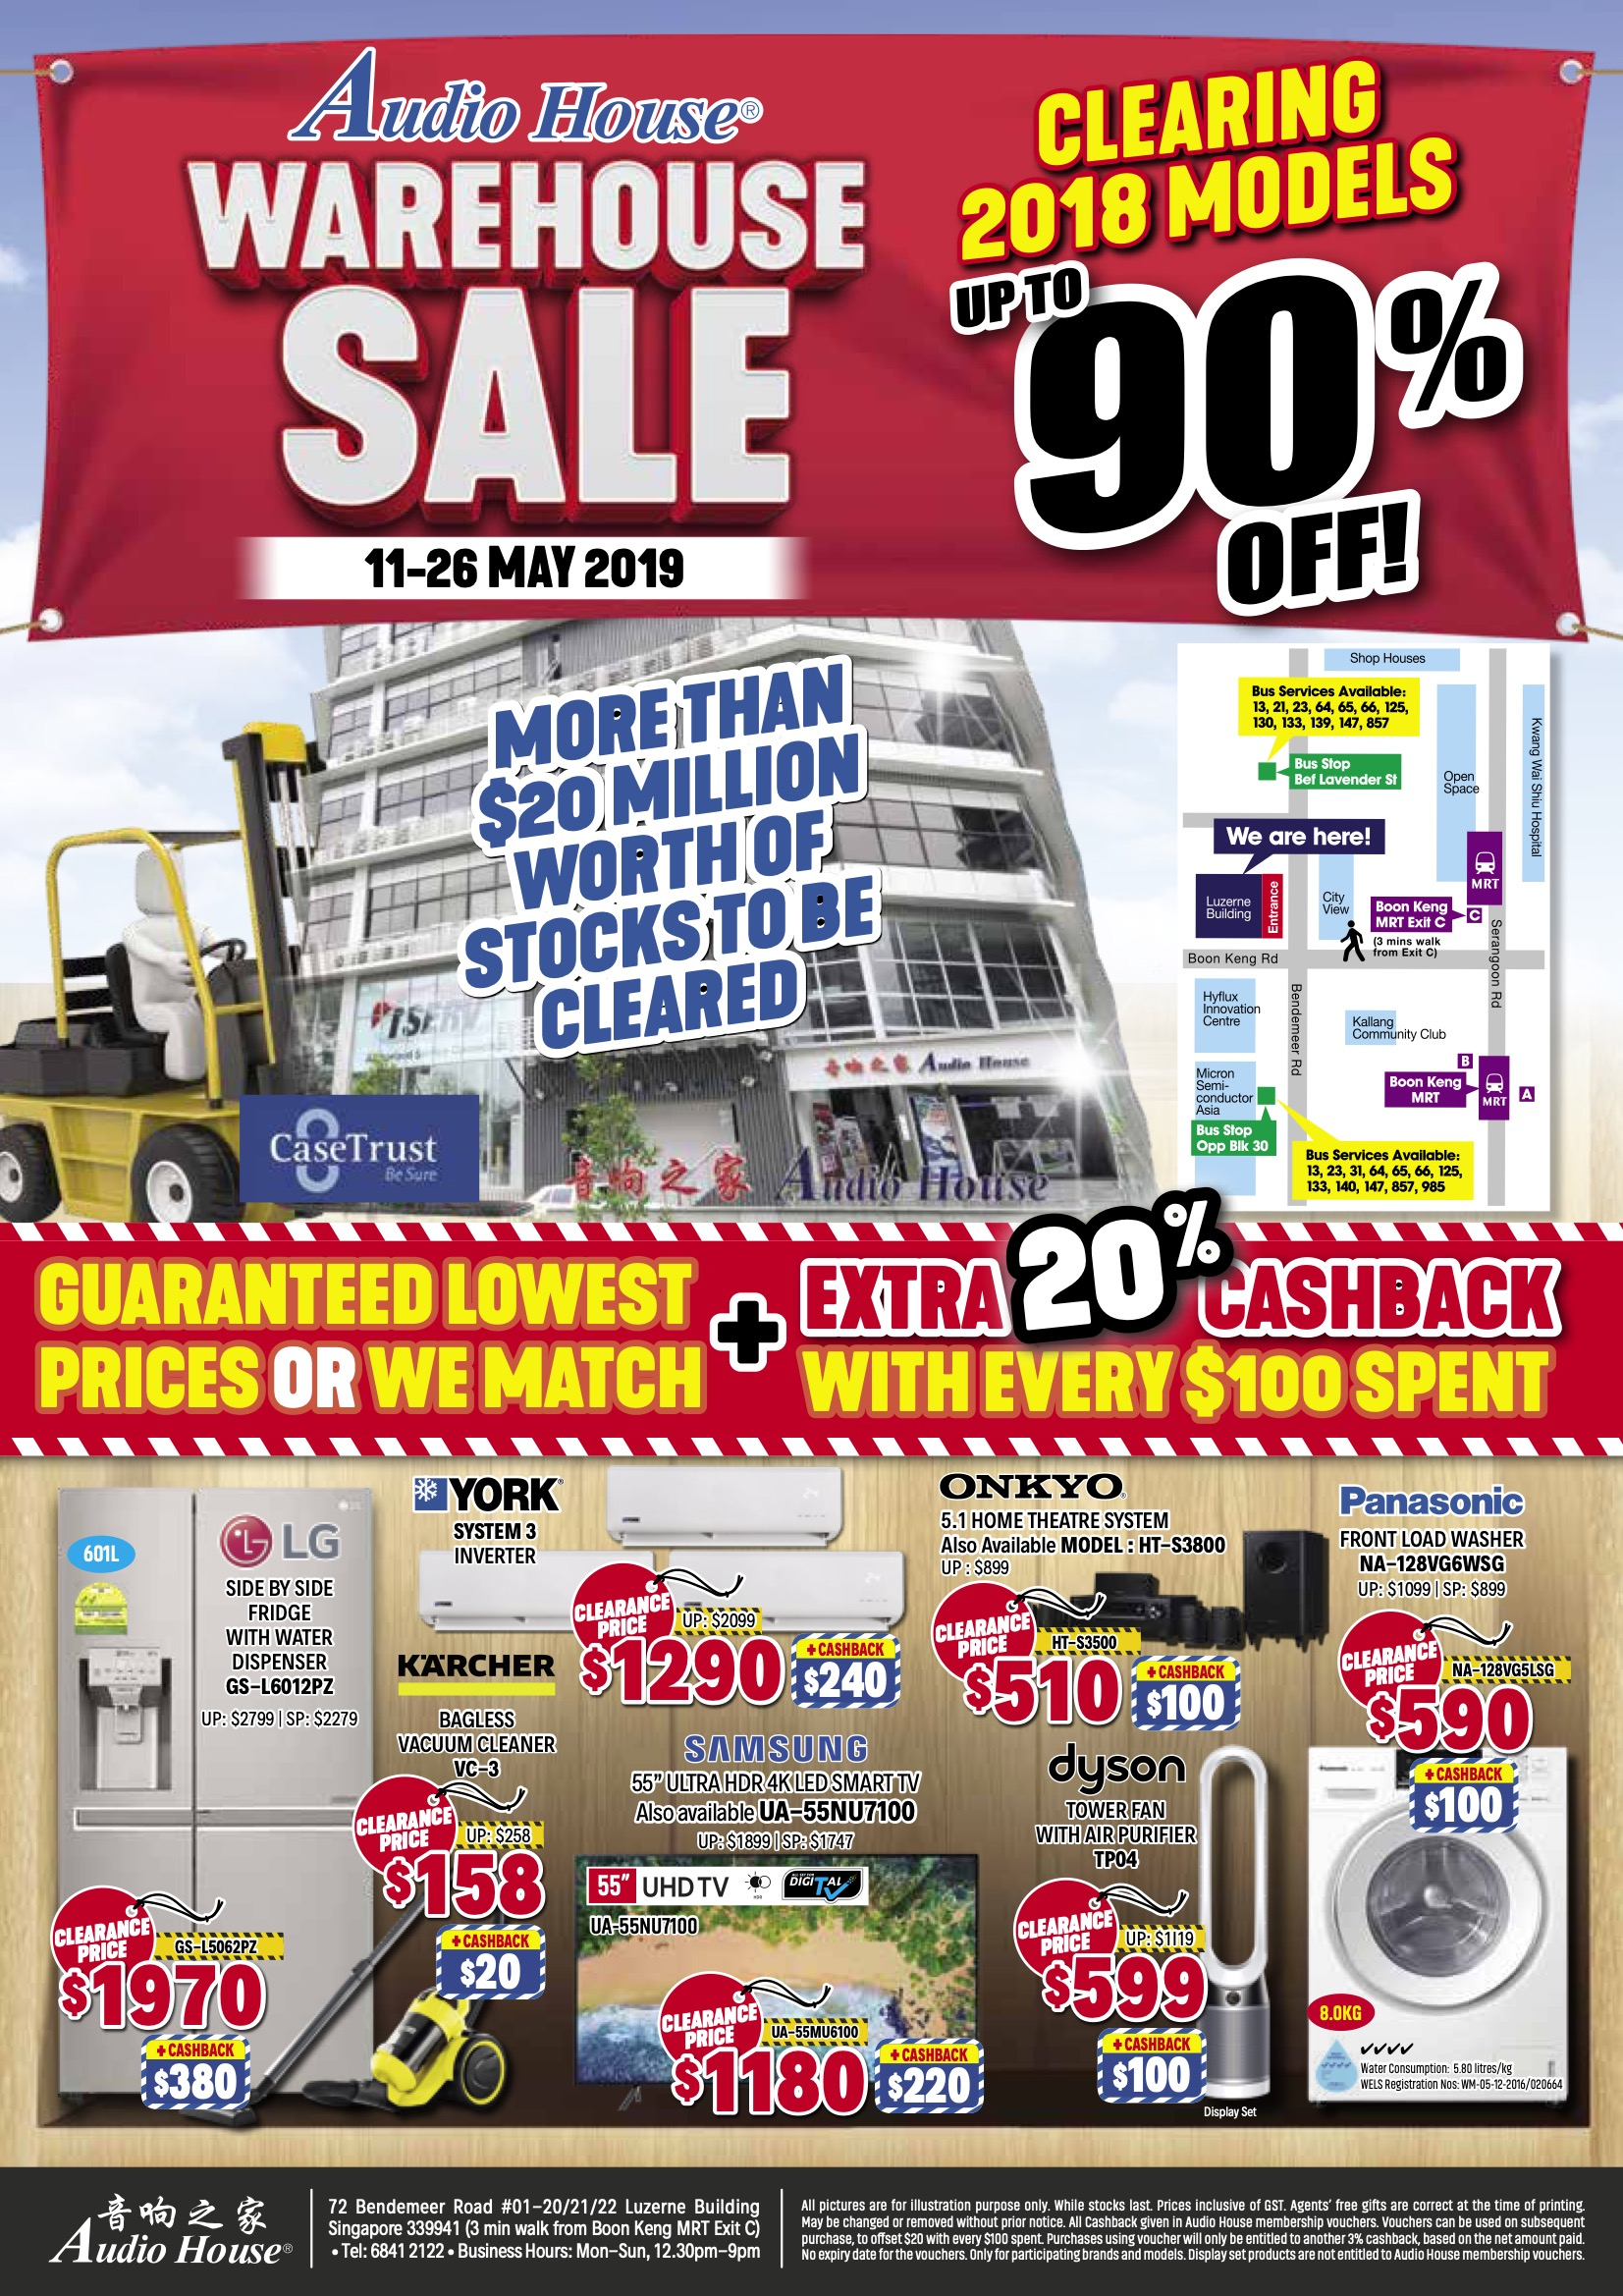 Audio House Singapore Warehouse Sale Up to 90% Off Promotion 11-26 May 2019 | Why Not Deals & Promotions